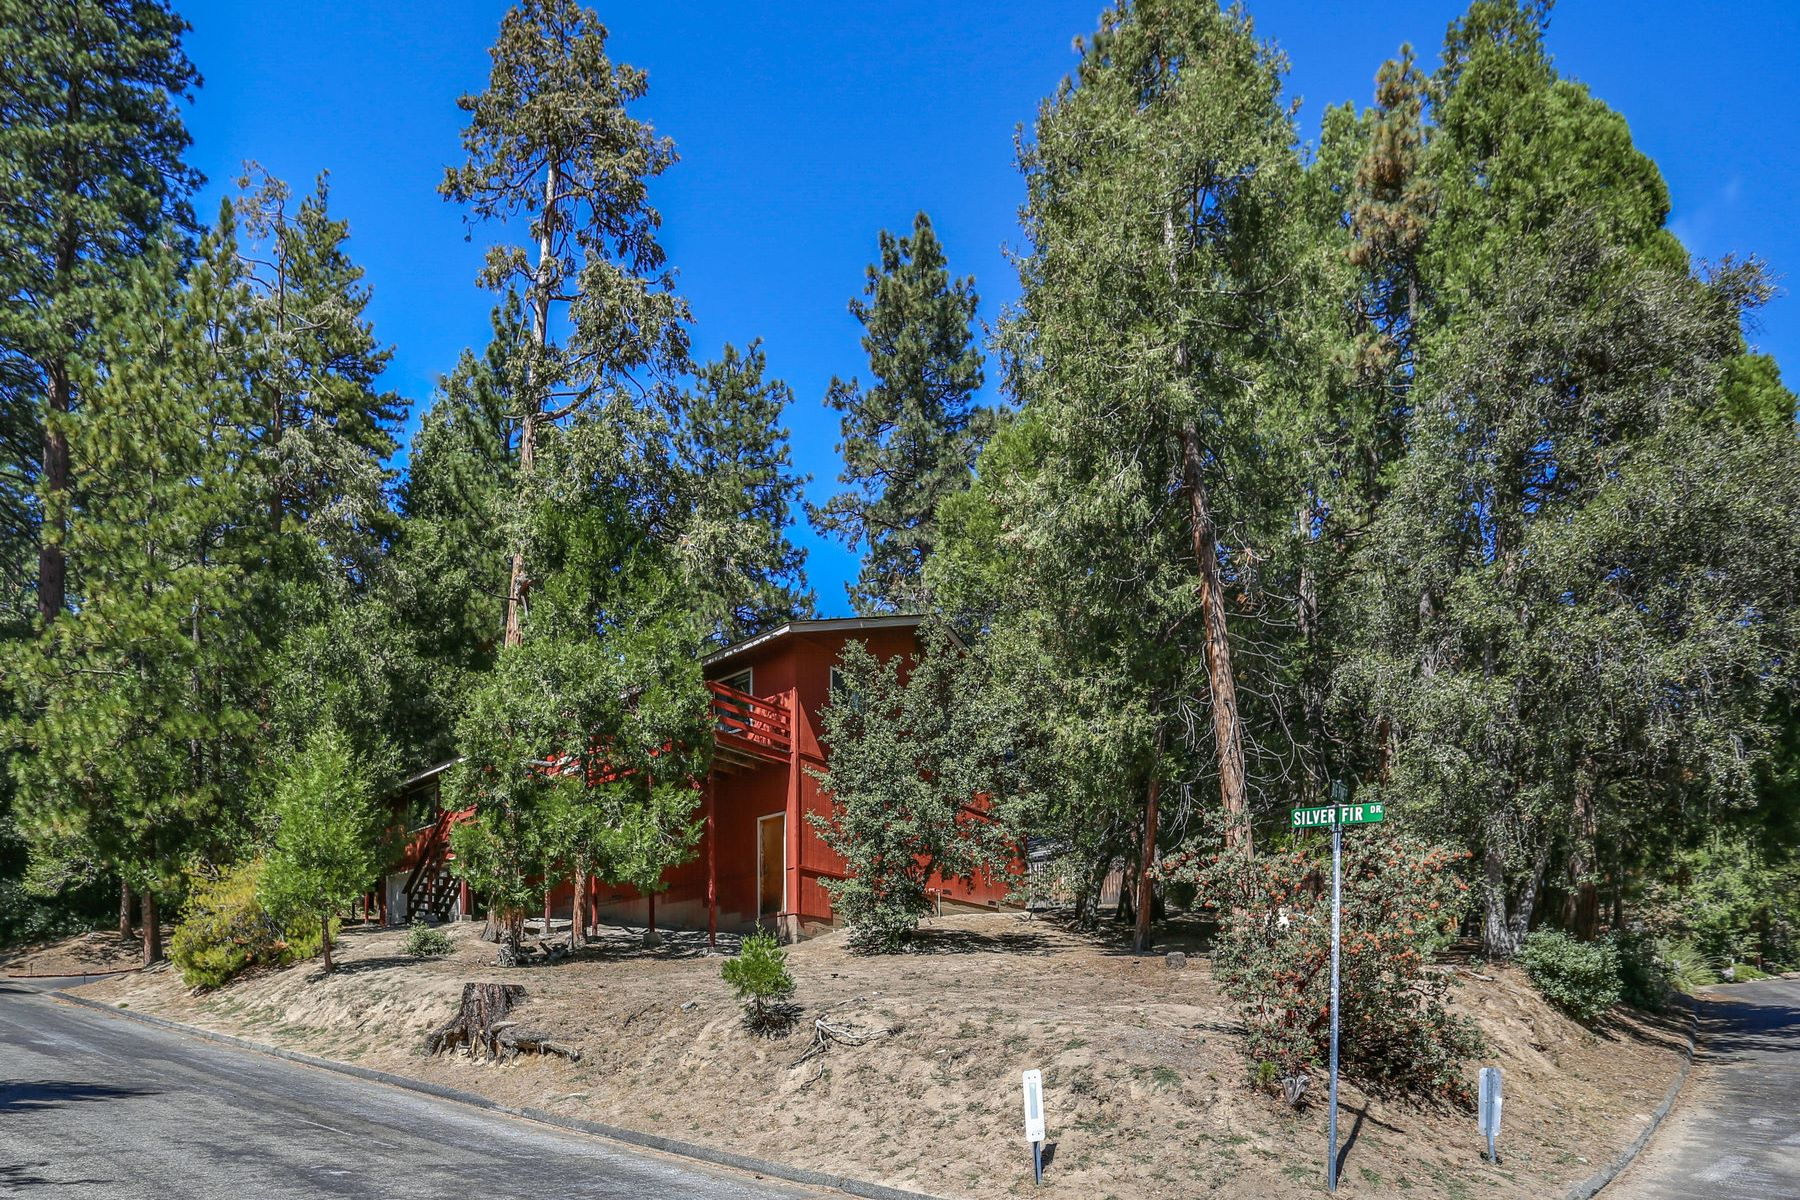 Single Family Homes for Sale at 53664 Silver Fir Drive Idyllwild, California 92549 United States